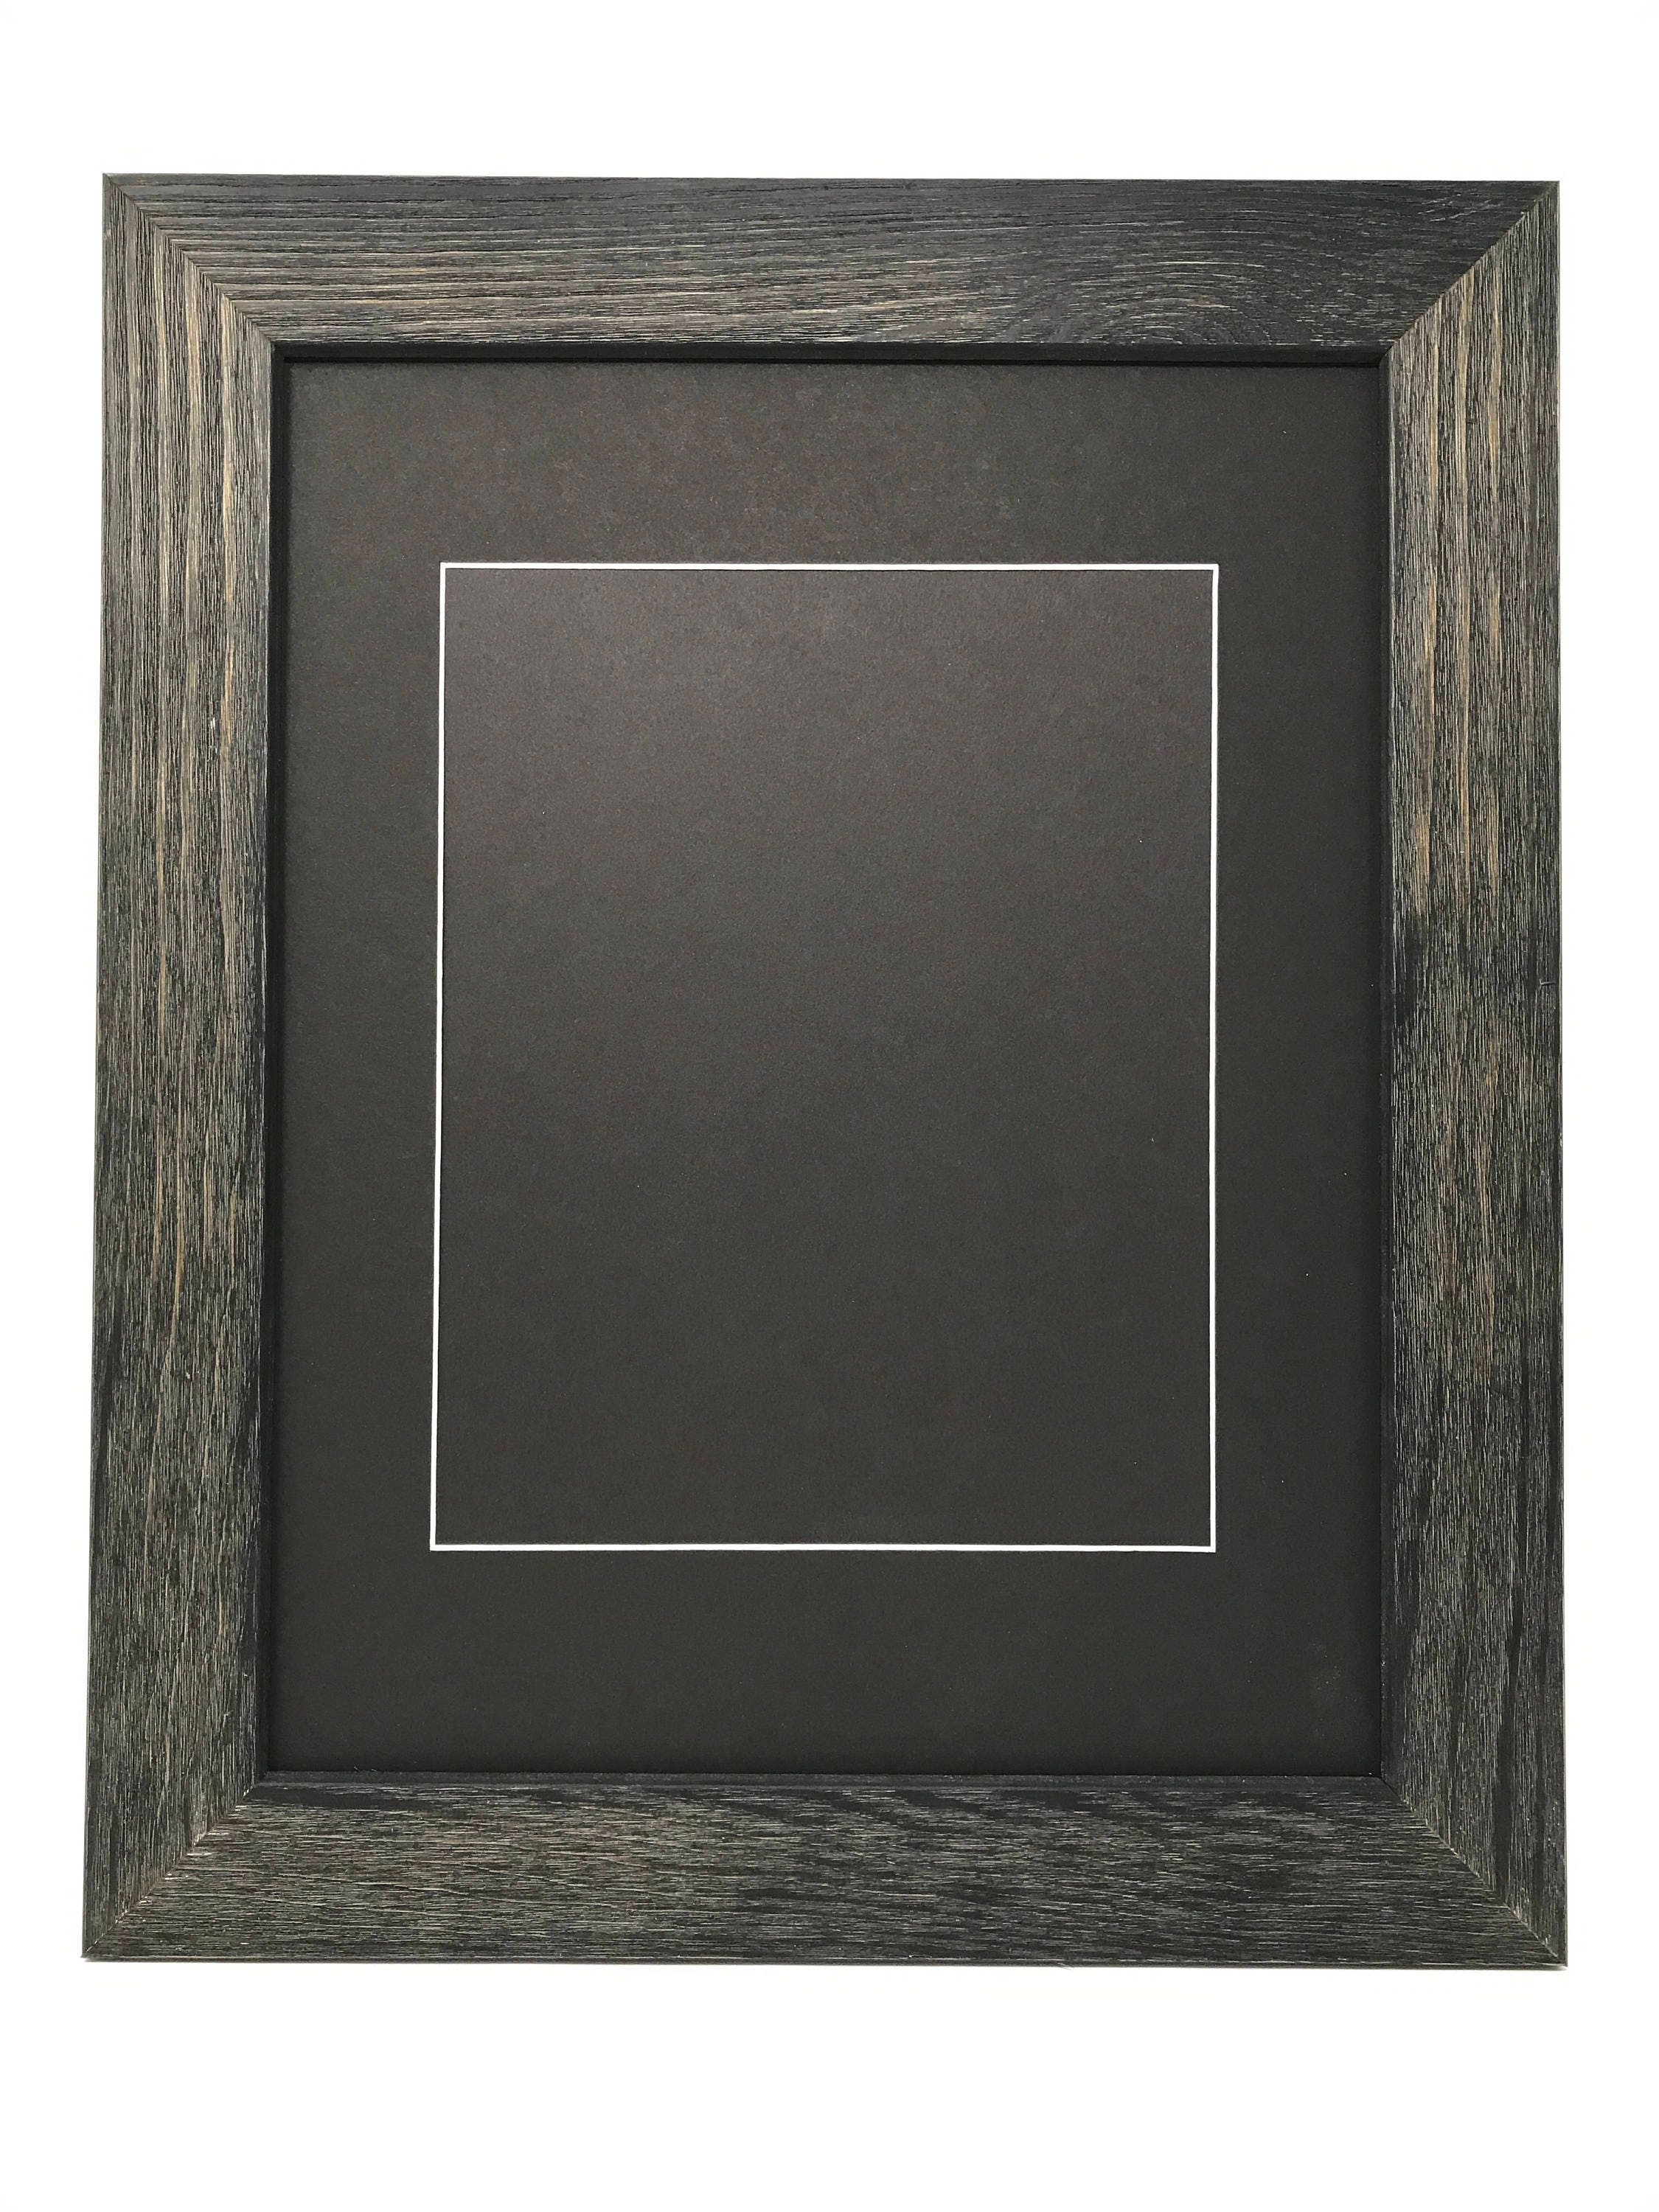 16x20 175 rustic black solid wood picture frame with black 16x20 175 rustic black solid wood picture frame with black signature mat cut for 8x10 picture jeuxipadfo Gallery